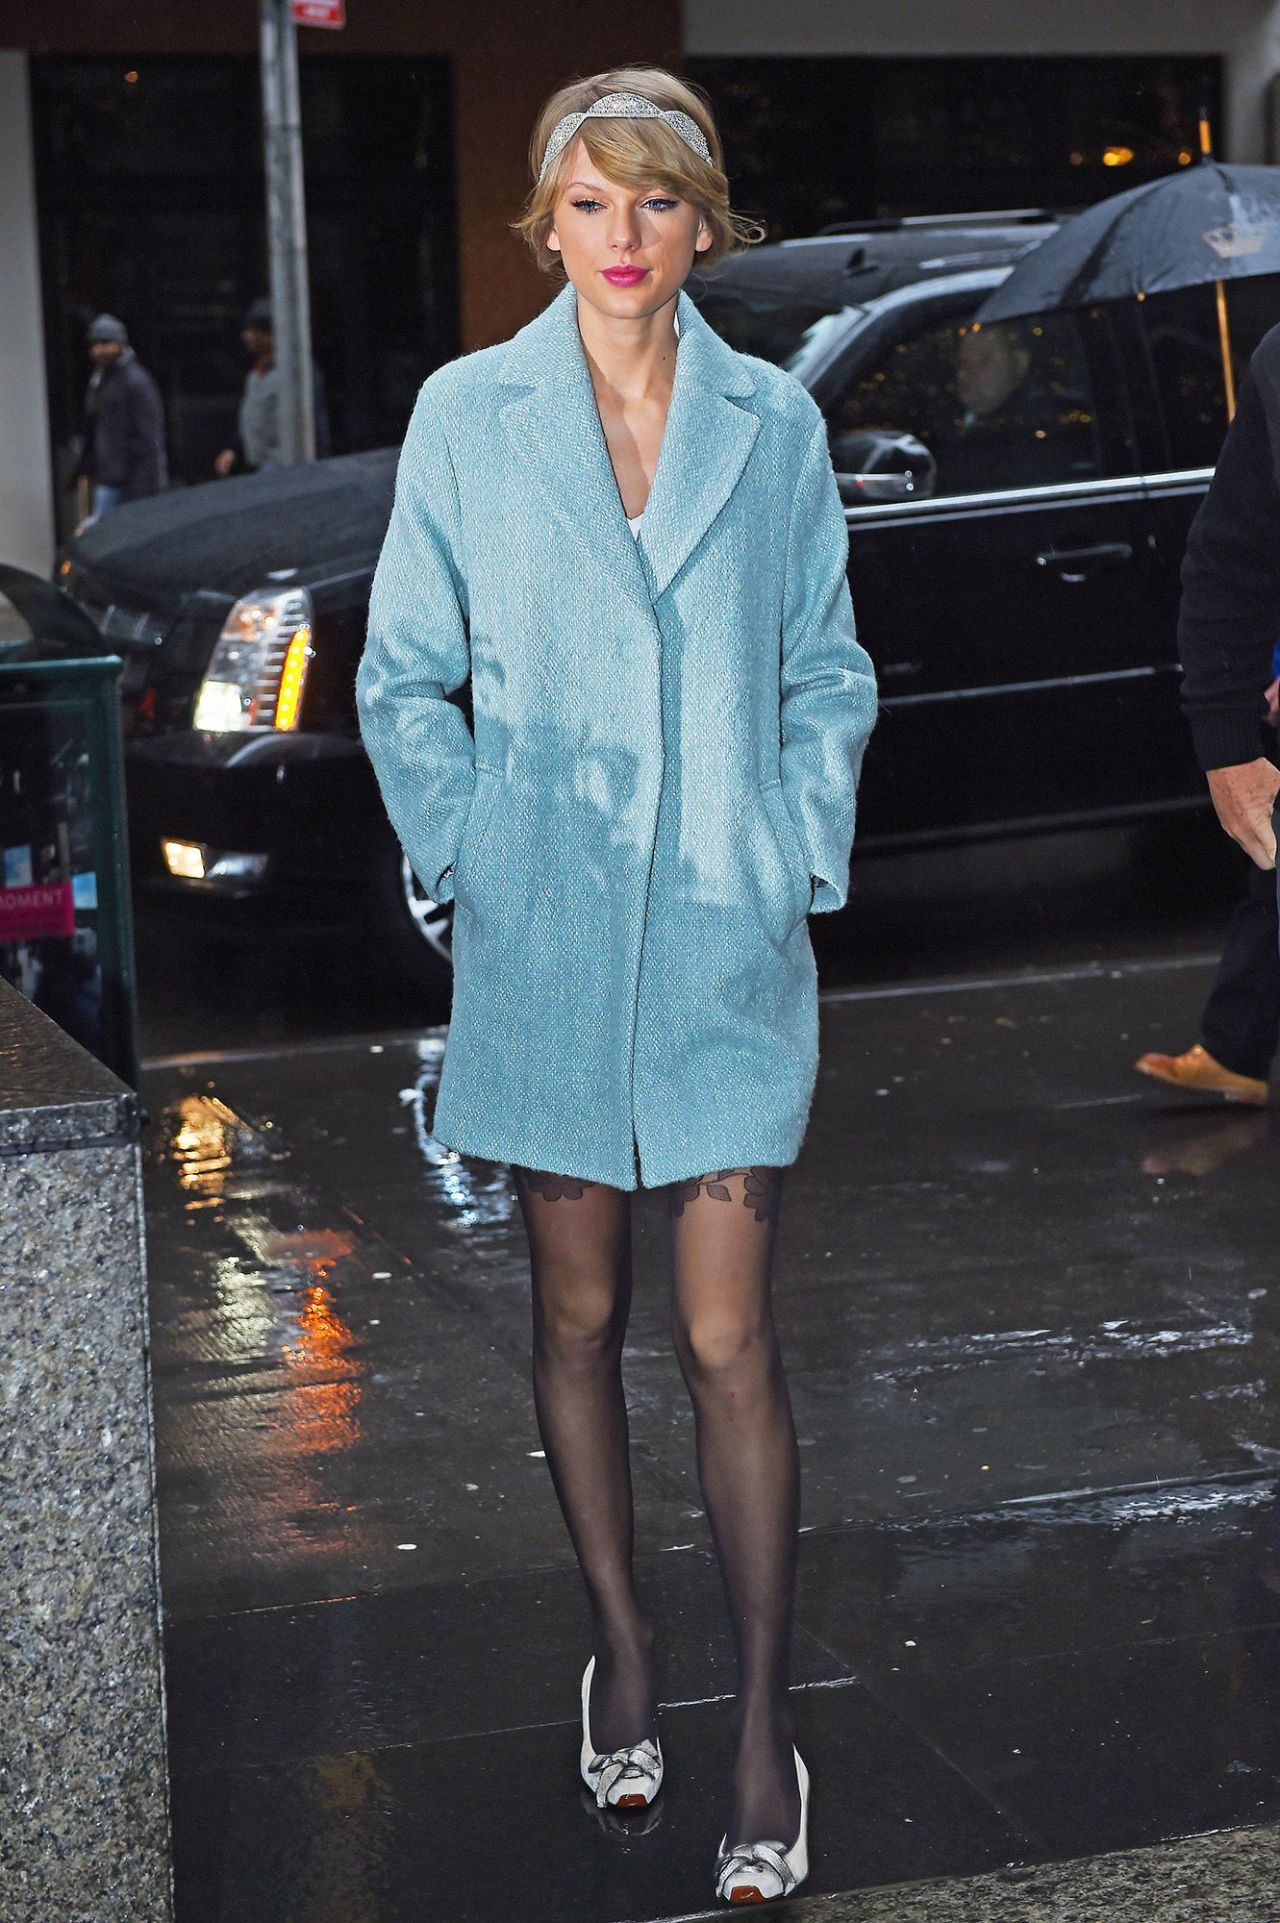 taylor-swift-style-going-to-a-broadway-play-in-new-york-city-december-2014_1